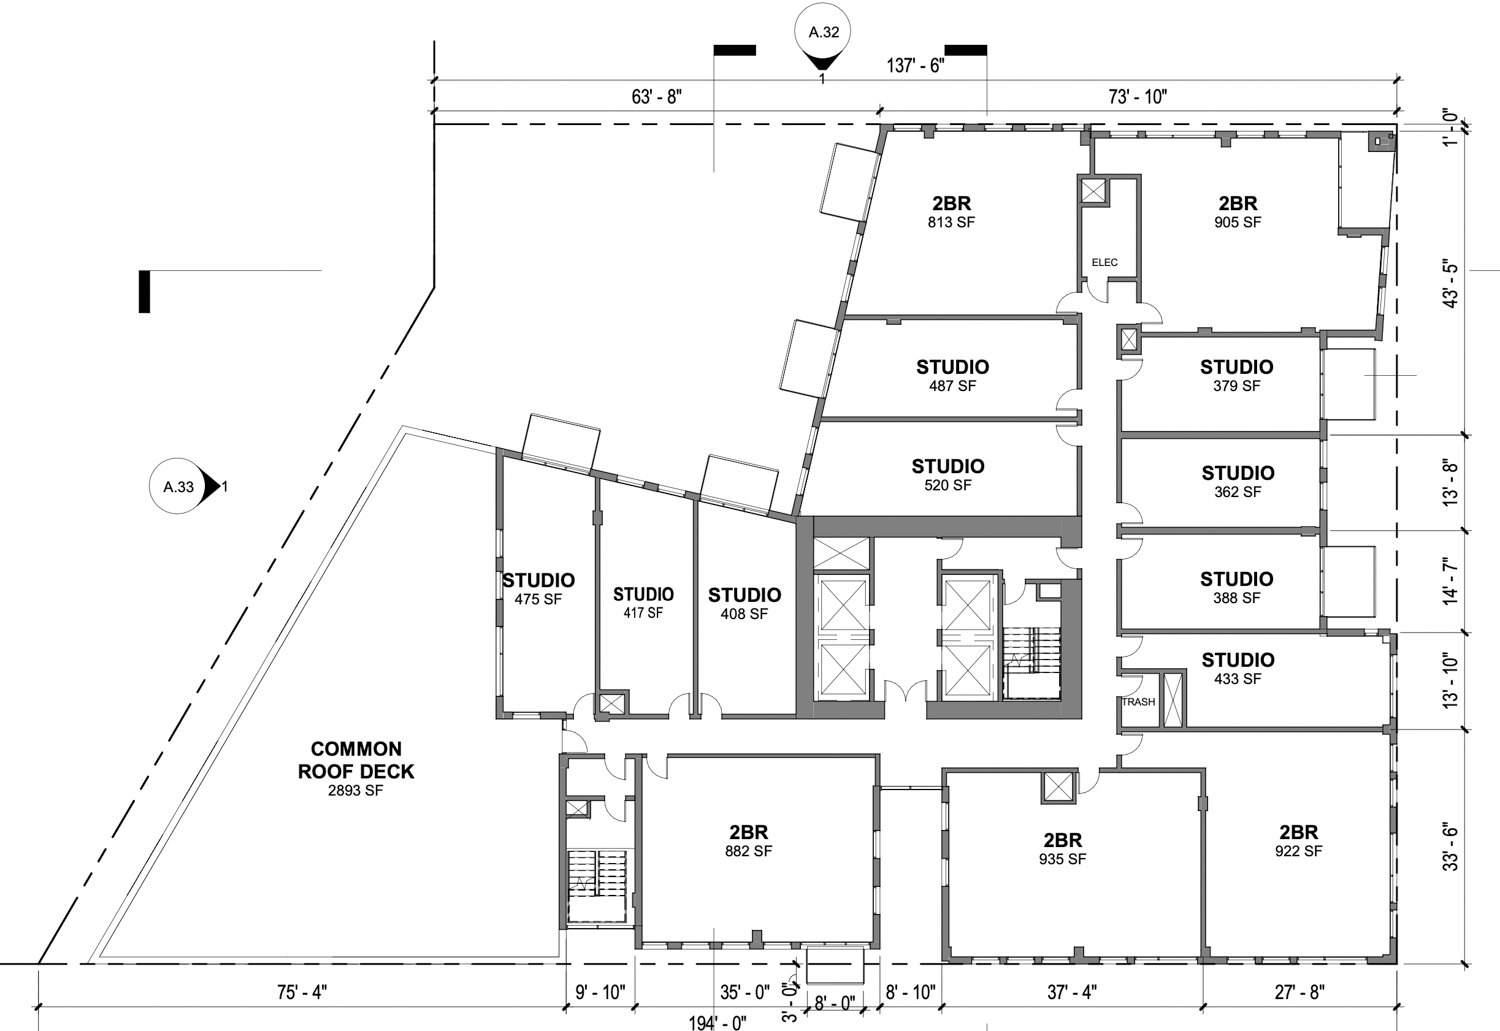 600 McAllister Street 8th level floor plan, drawing by David Baker Architects